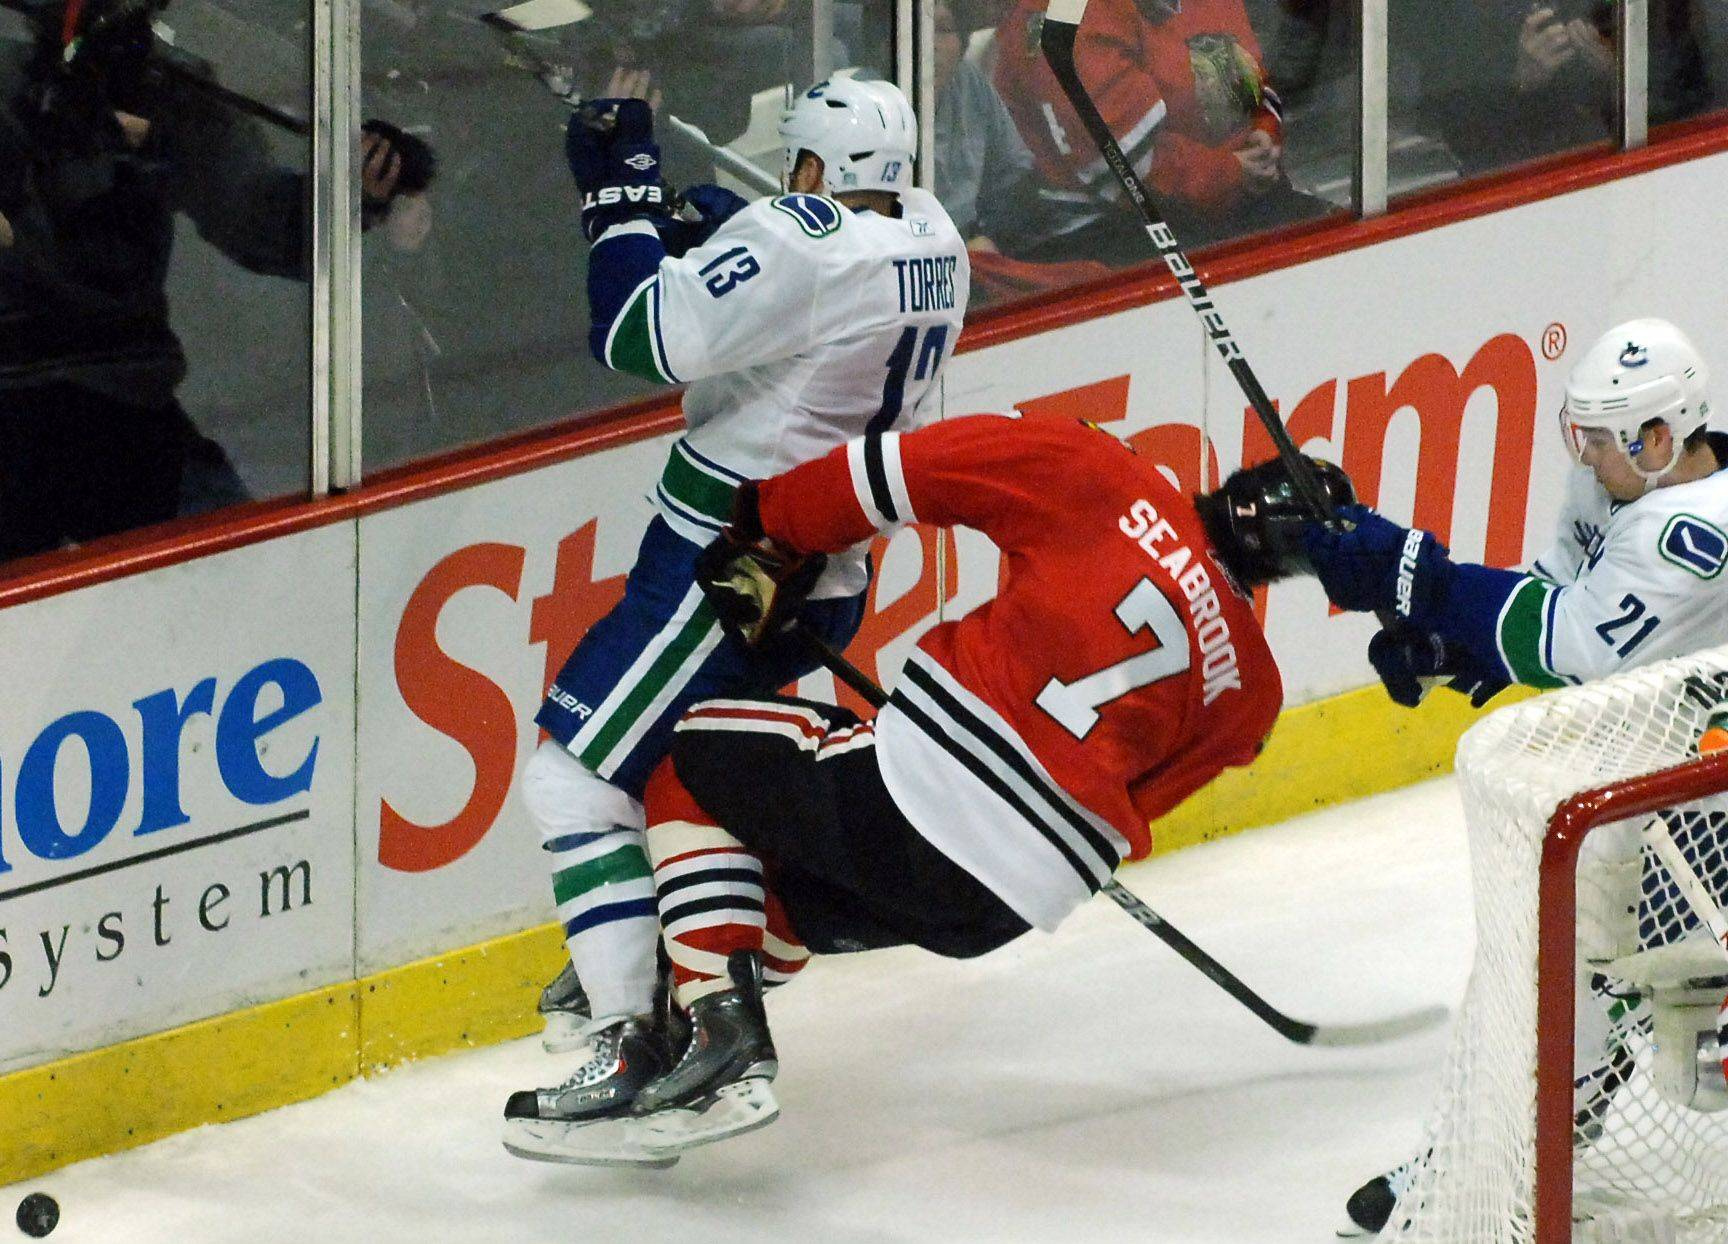 This hit on Brent Seabrook by Vancouver's Raffi Torres (13) earned the Canucks' left winger only a two-minute penalty in Game 3 of the NHL Western Conference quarterfinals Sunday but it has knocked Seabrook out for Game 4 at the United Center tonight.